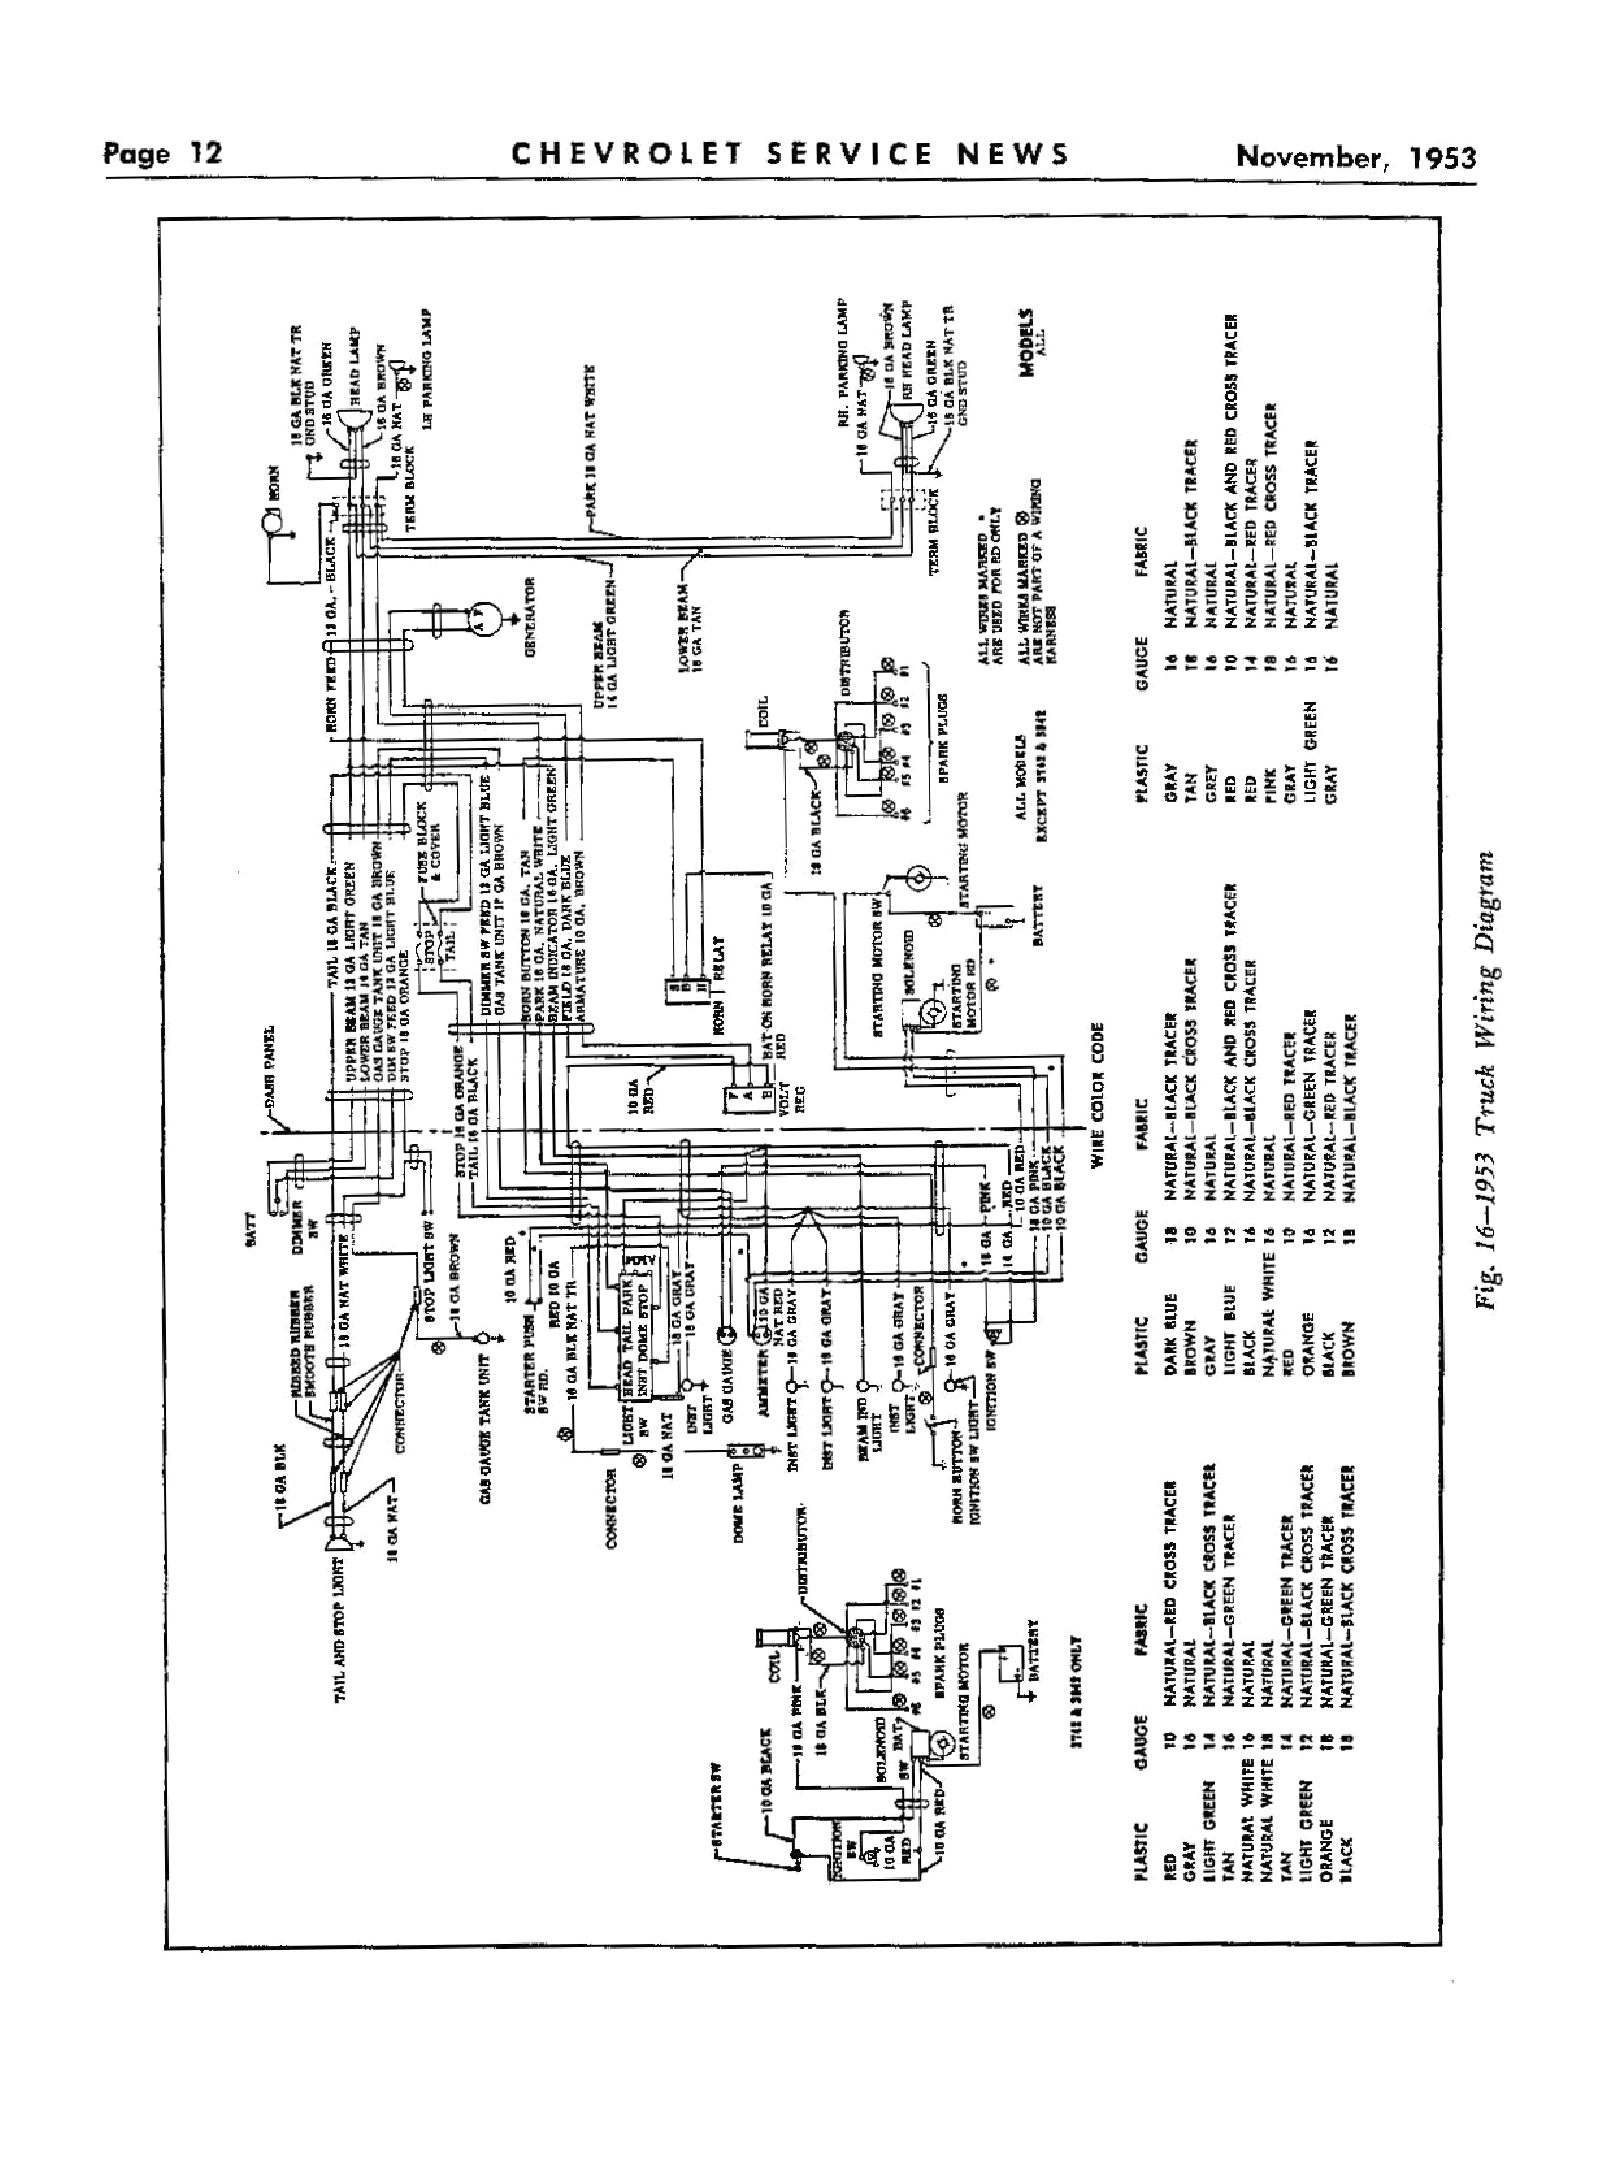 53csn1112 chevy wiring diagrams 1953 chevy truck wiring diagram at bayanpartner.co